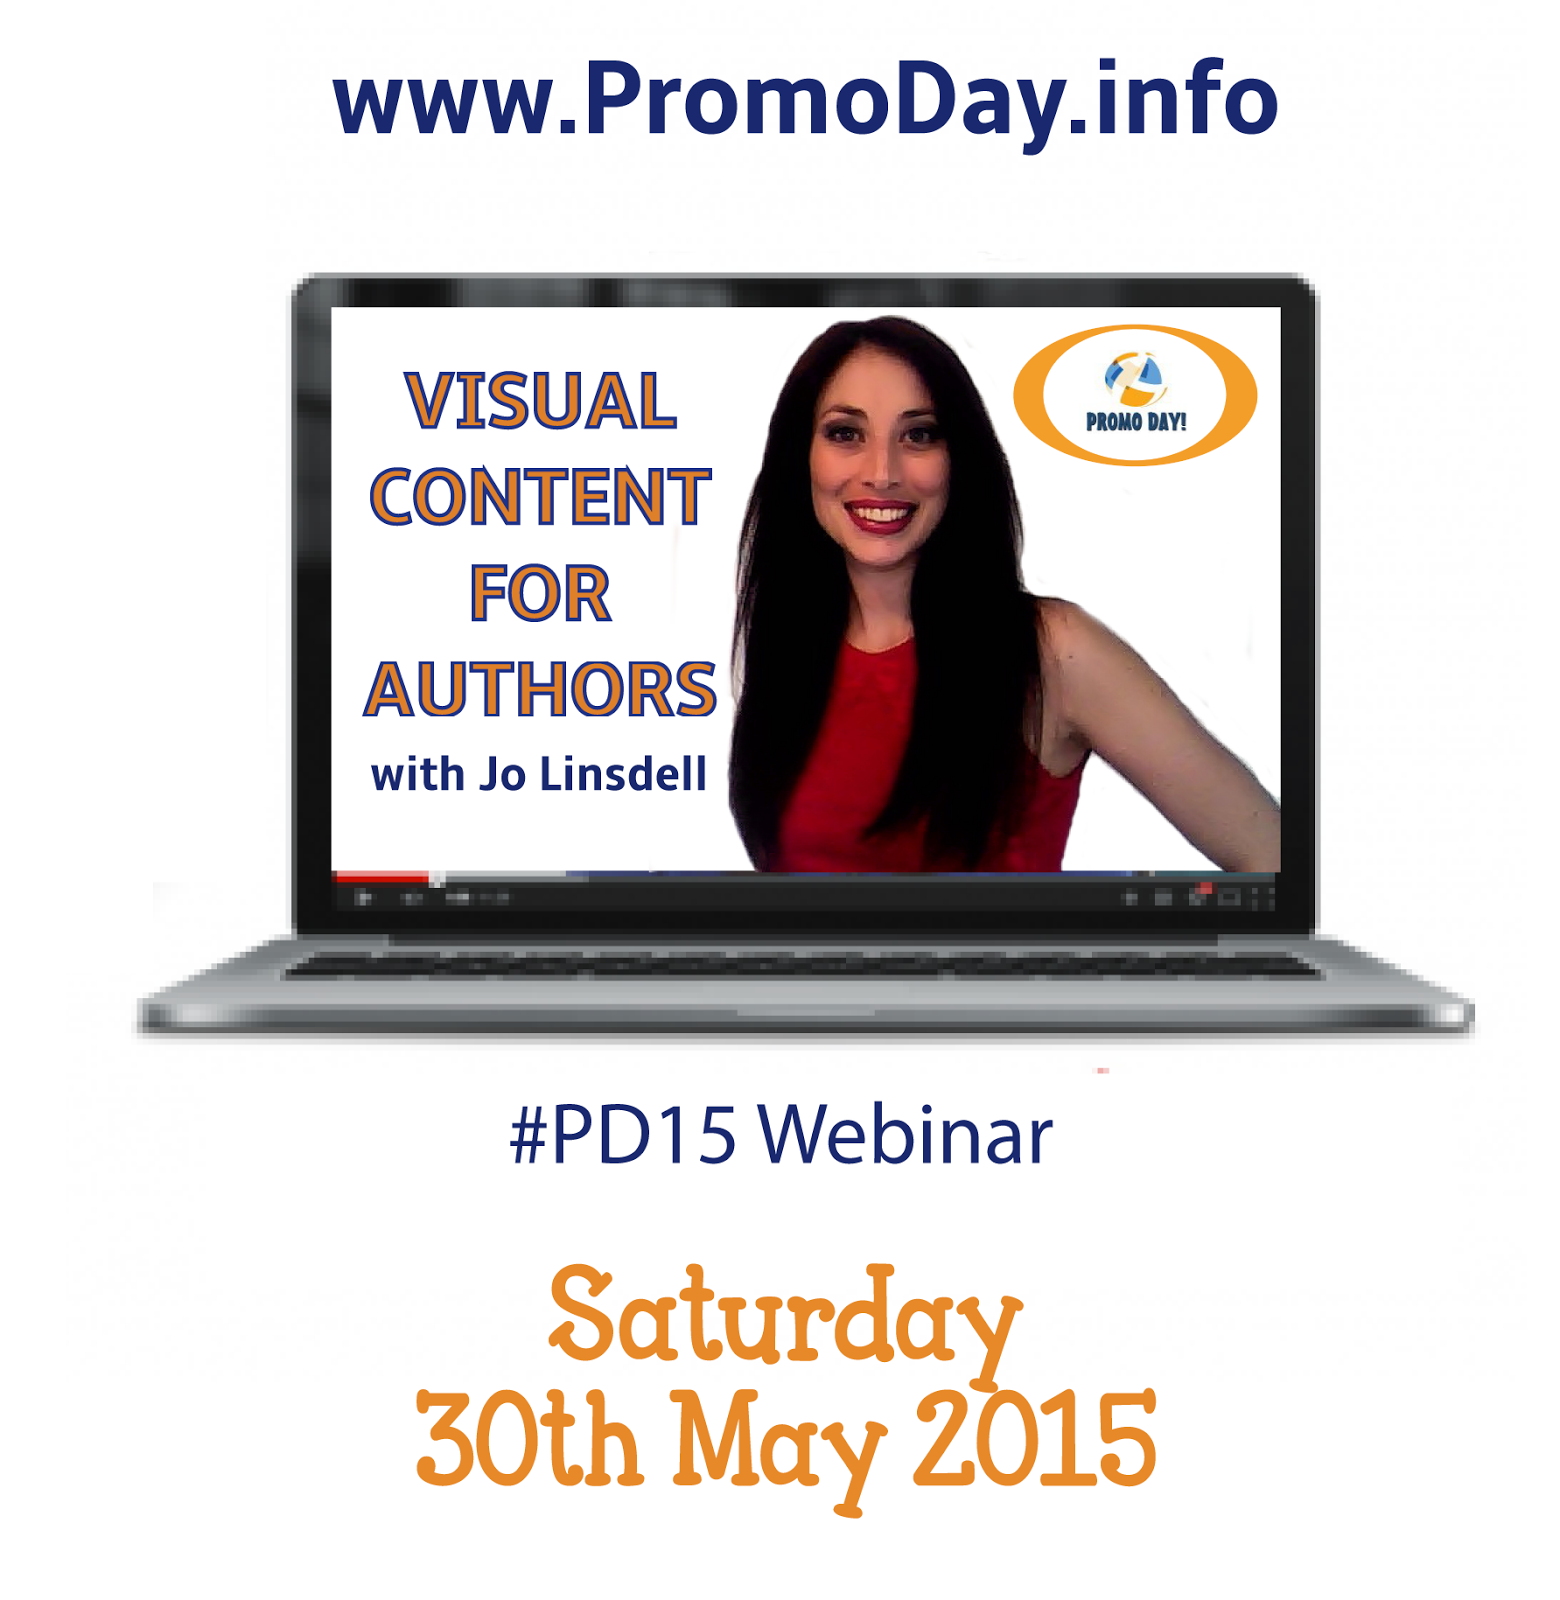 FREE WEBINAR Visual Content for Authors with Jo Linsdell, www.PromoDay.info #PD15 Saturday 30th May 2015